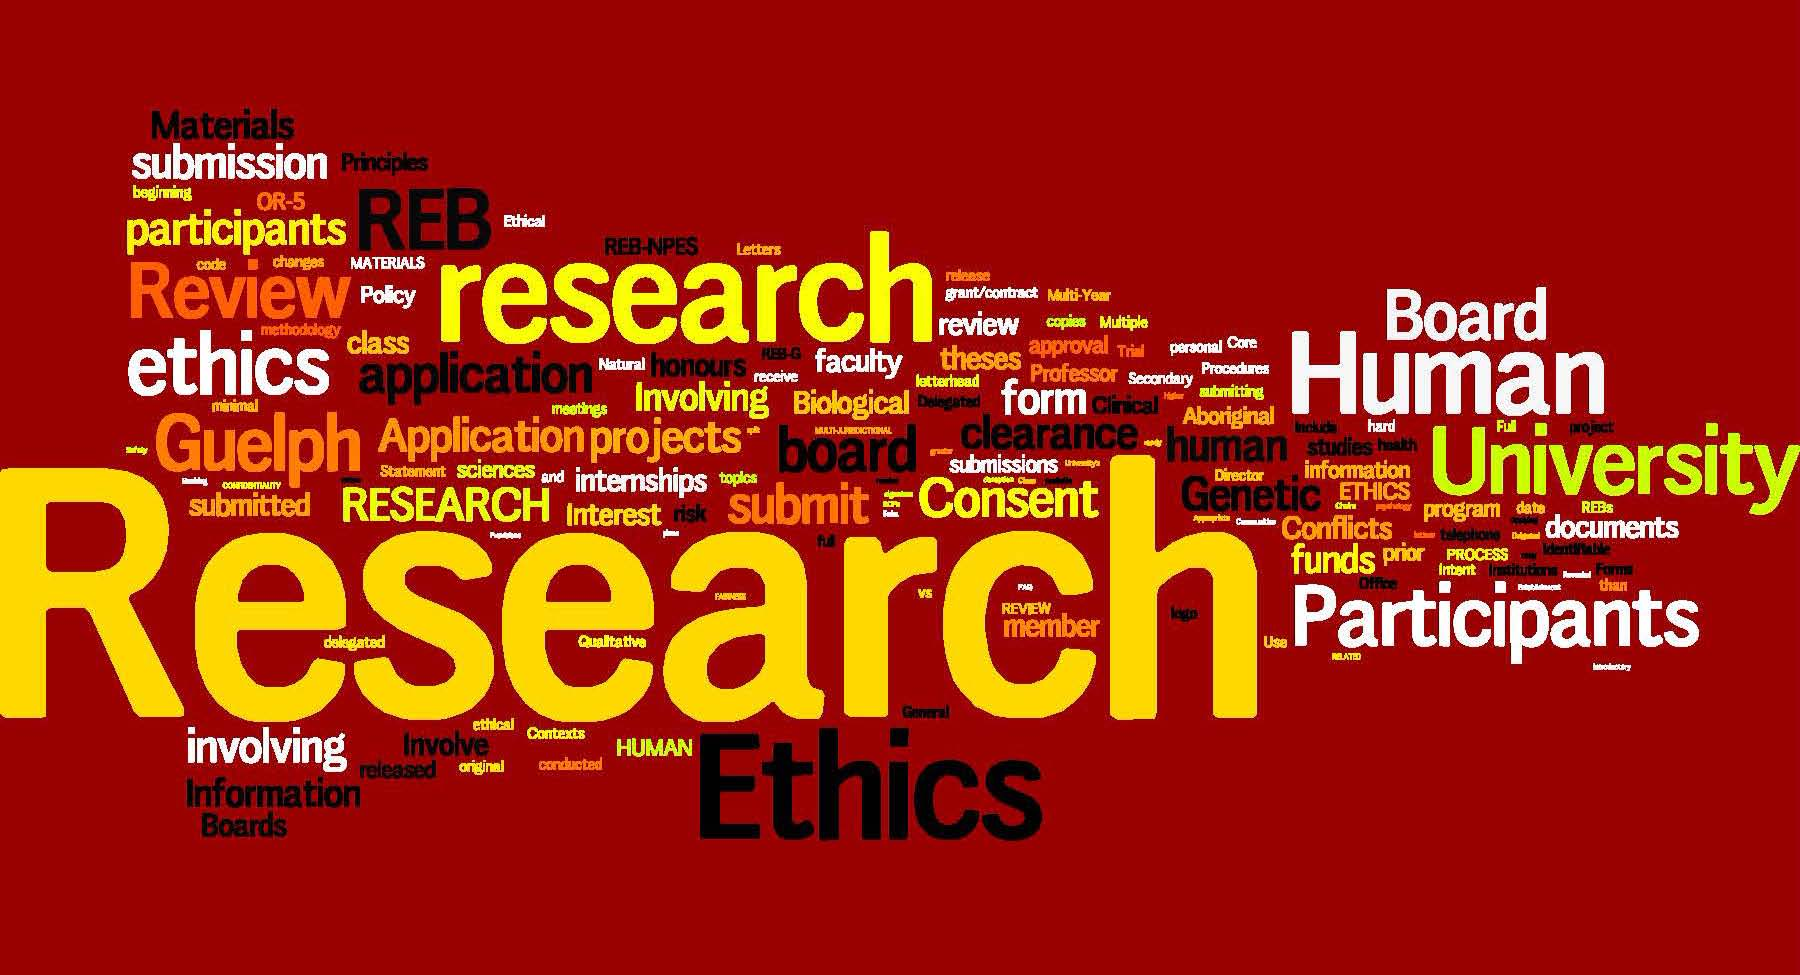 a research about ethics Research ethics is defined here to be the ethics of the planning, conduct, and reporting of research it is clear that research ethics should include: protections of human and animal subjects however, not all researchers use human or animal subjects, nor are the ethical dimensions of research confined solely to protections for research.